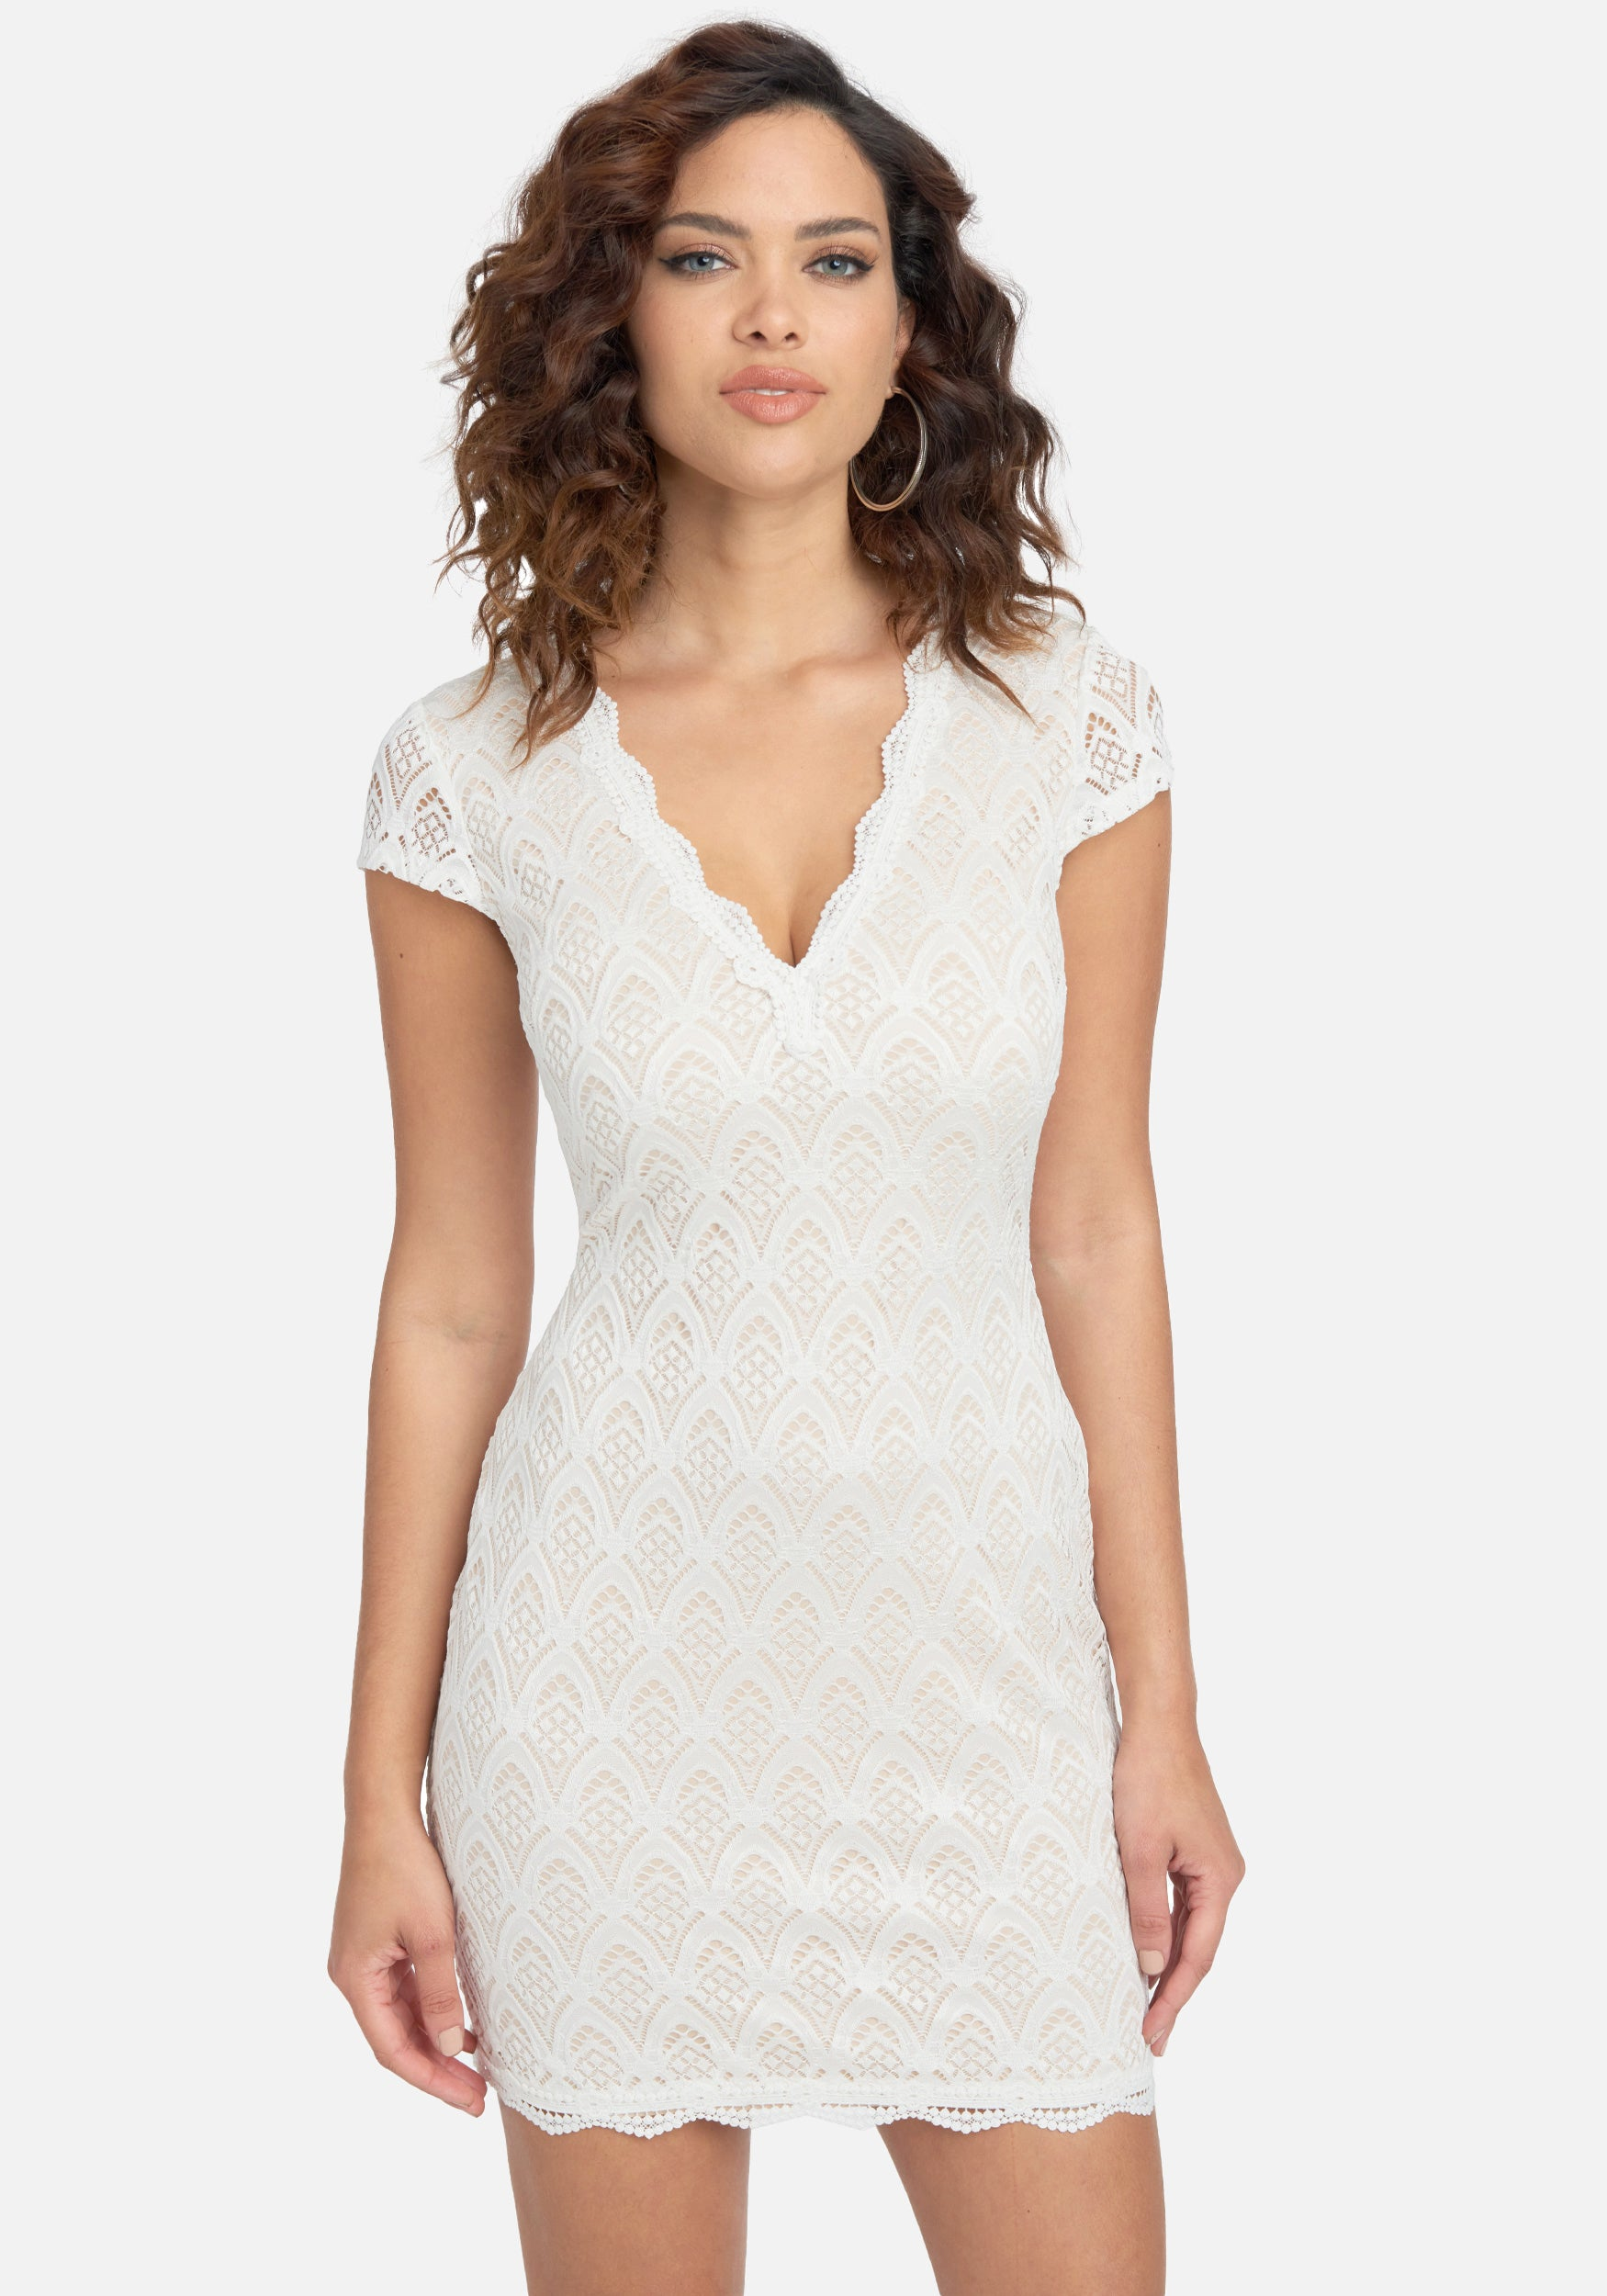 Bebe Women's Capped Sleeve Lace Dress, Size XXS in White/Nude Polyester/Spandex/Nylon